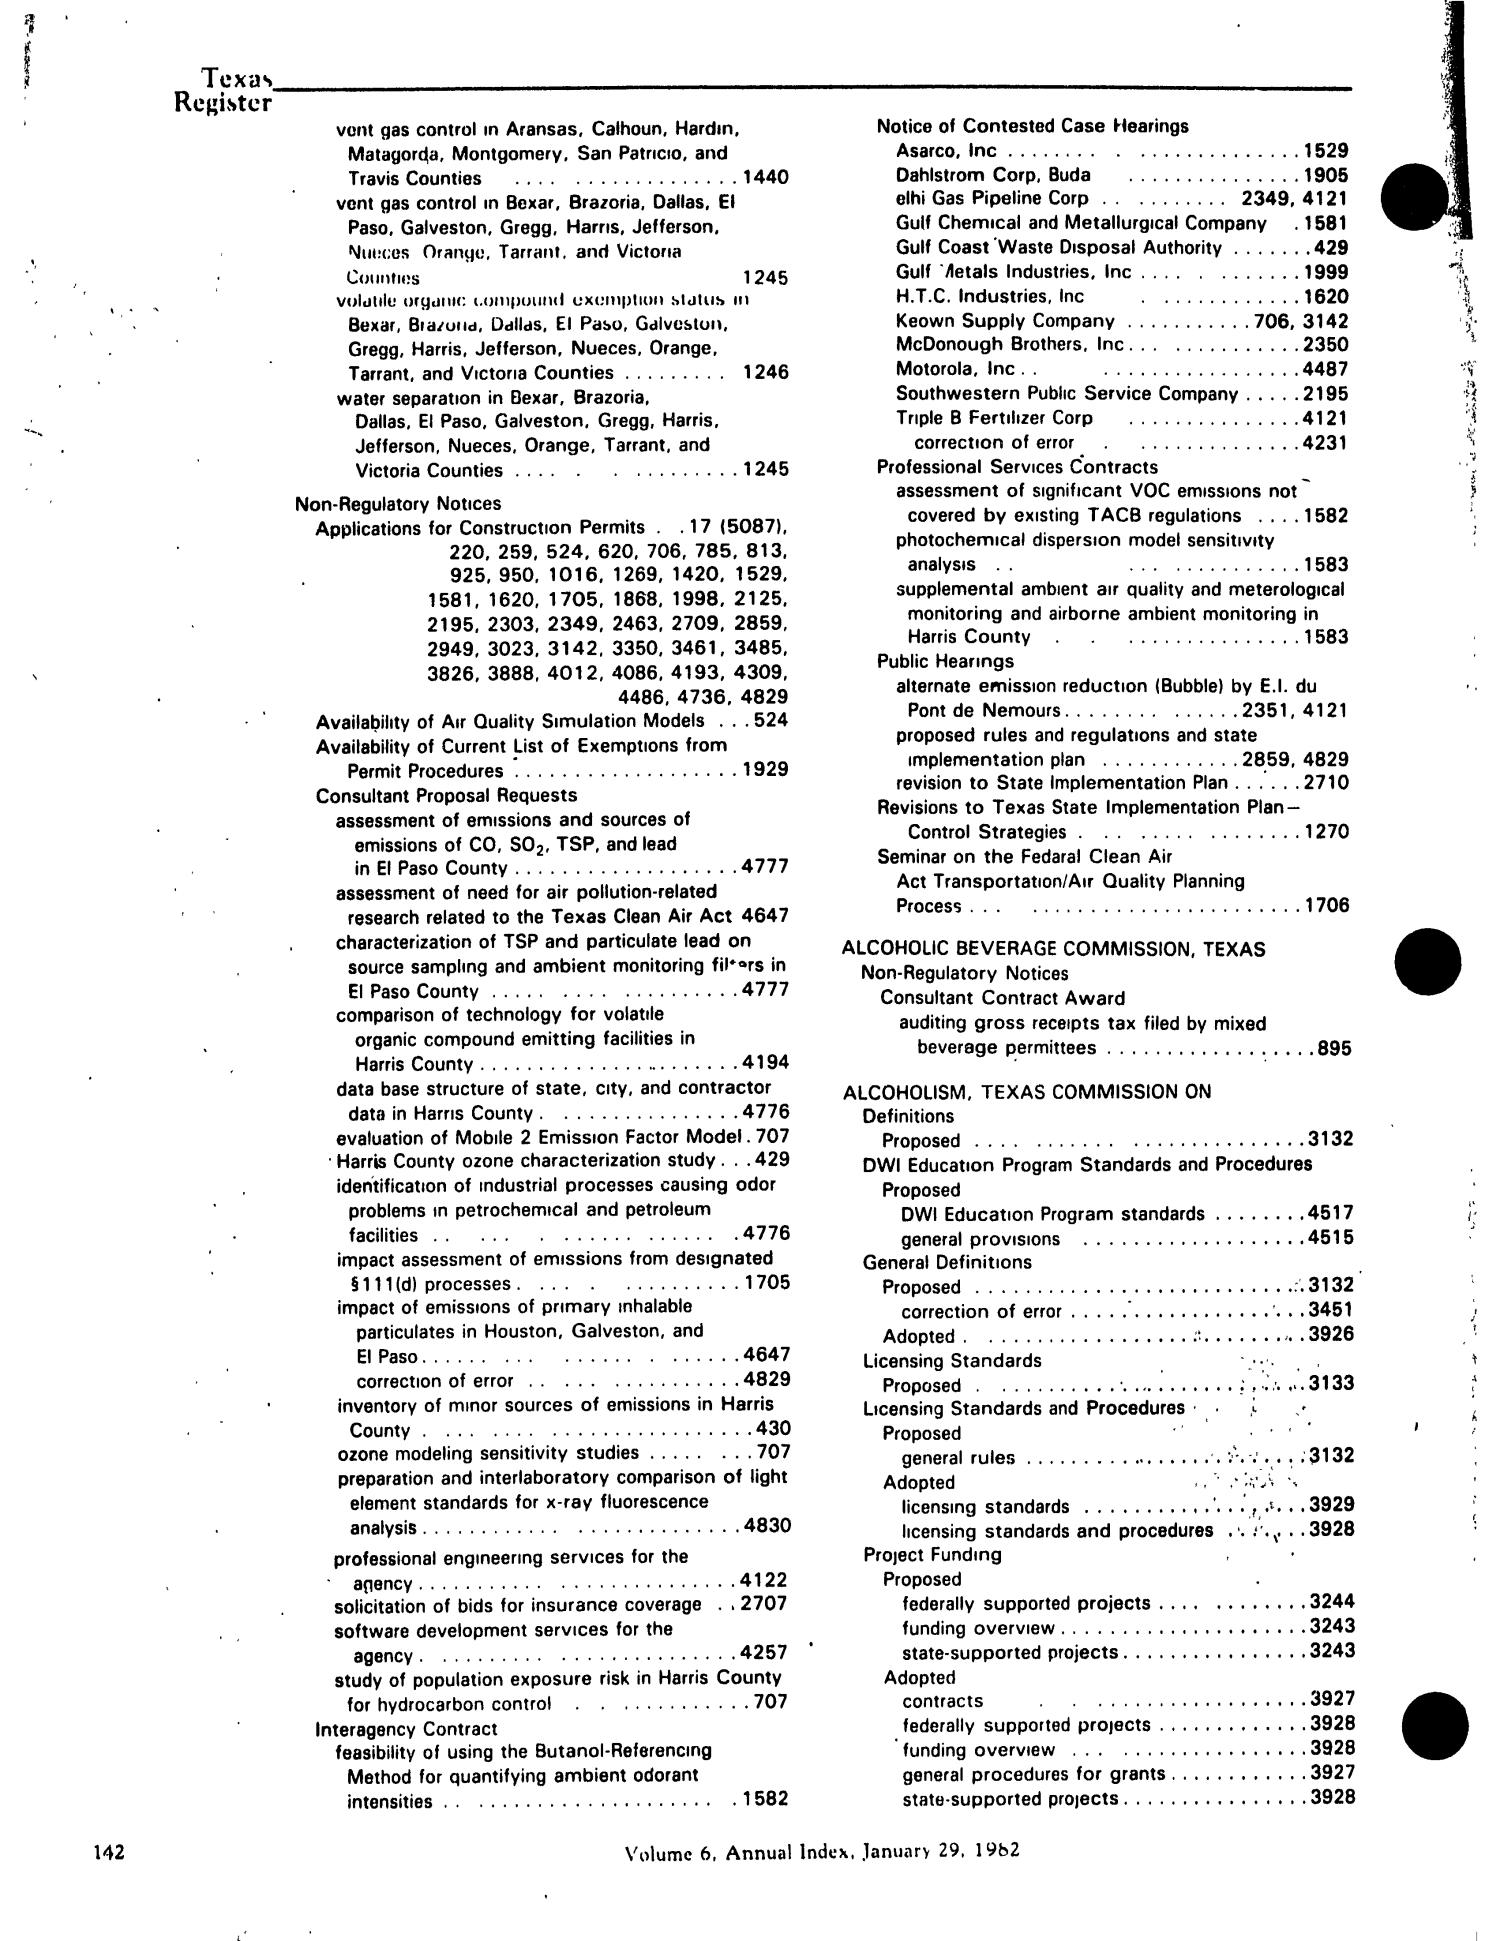 Texas Register, Volume 6, Annual Index, Pages 137-235, January 29, 1981                                                                                                      142